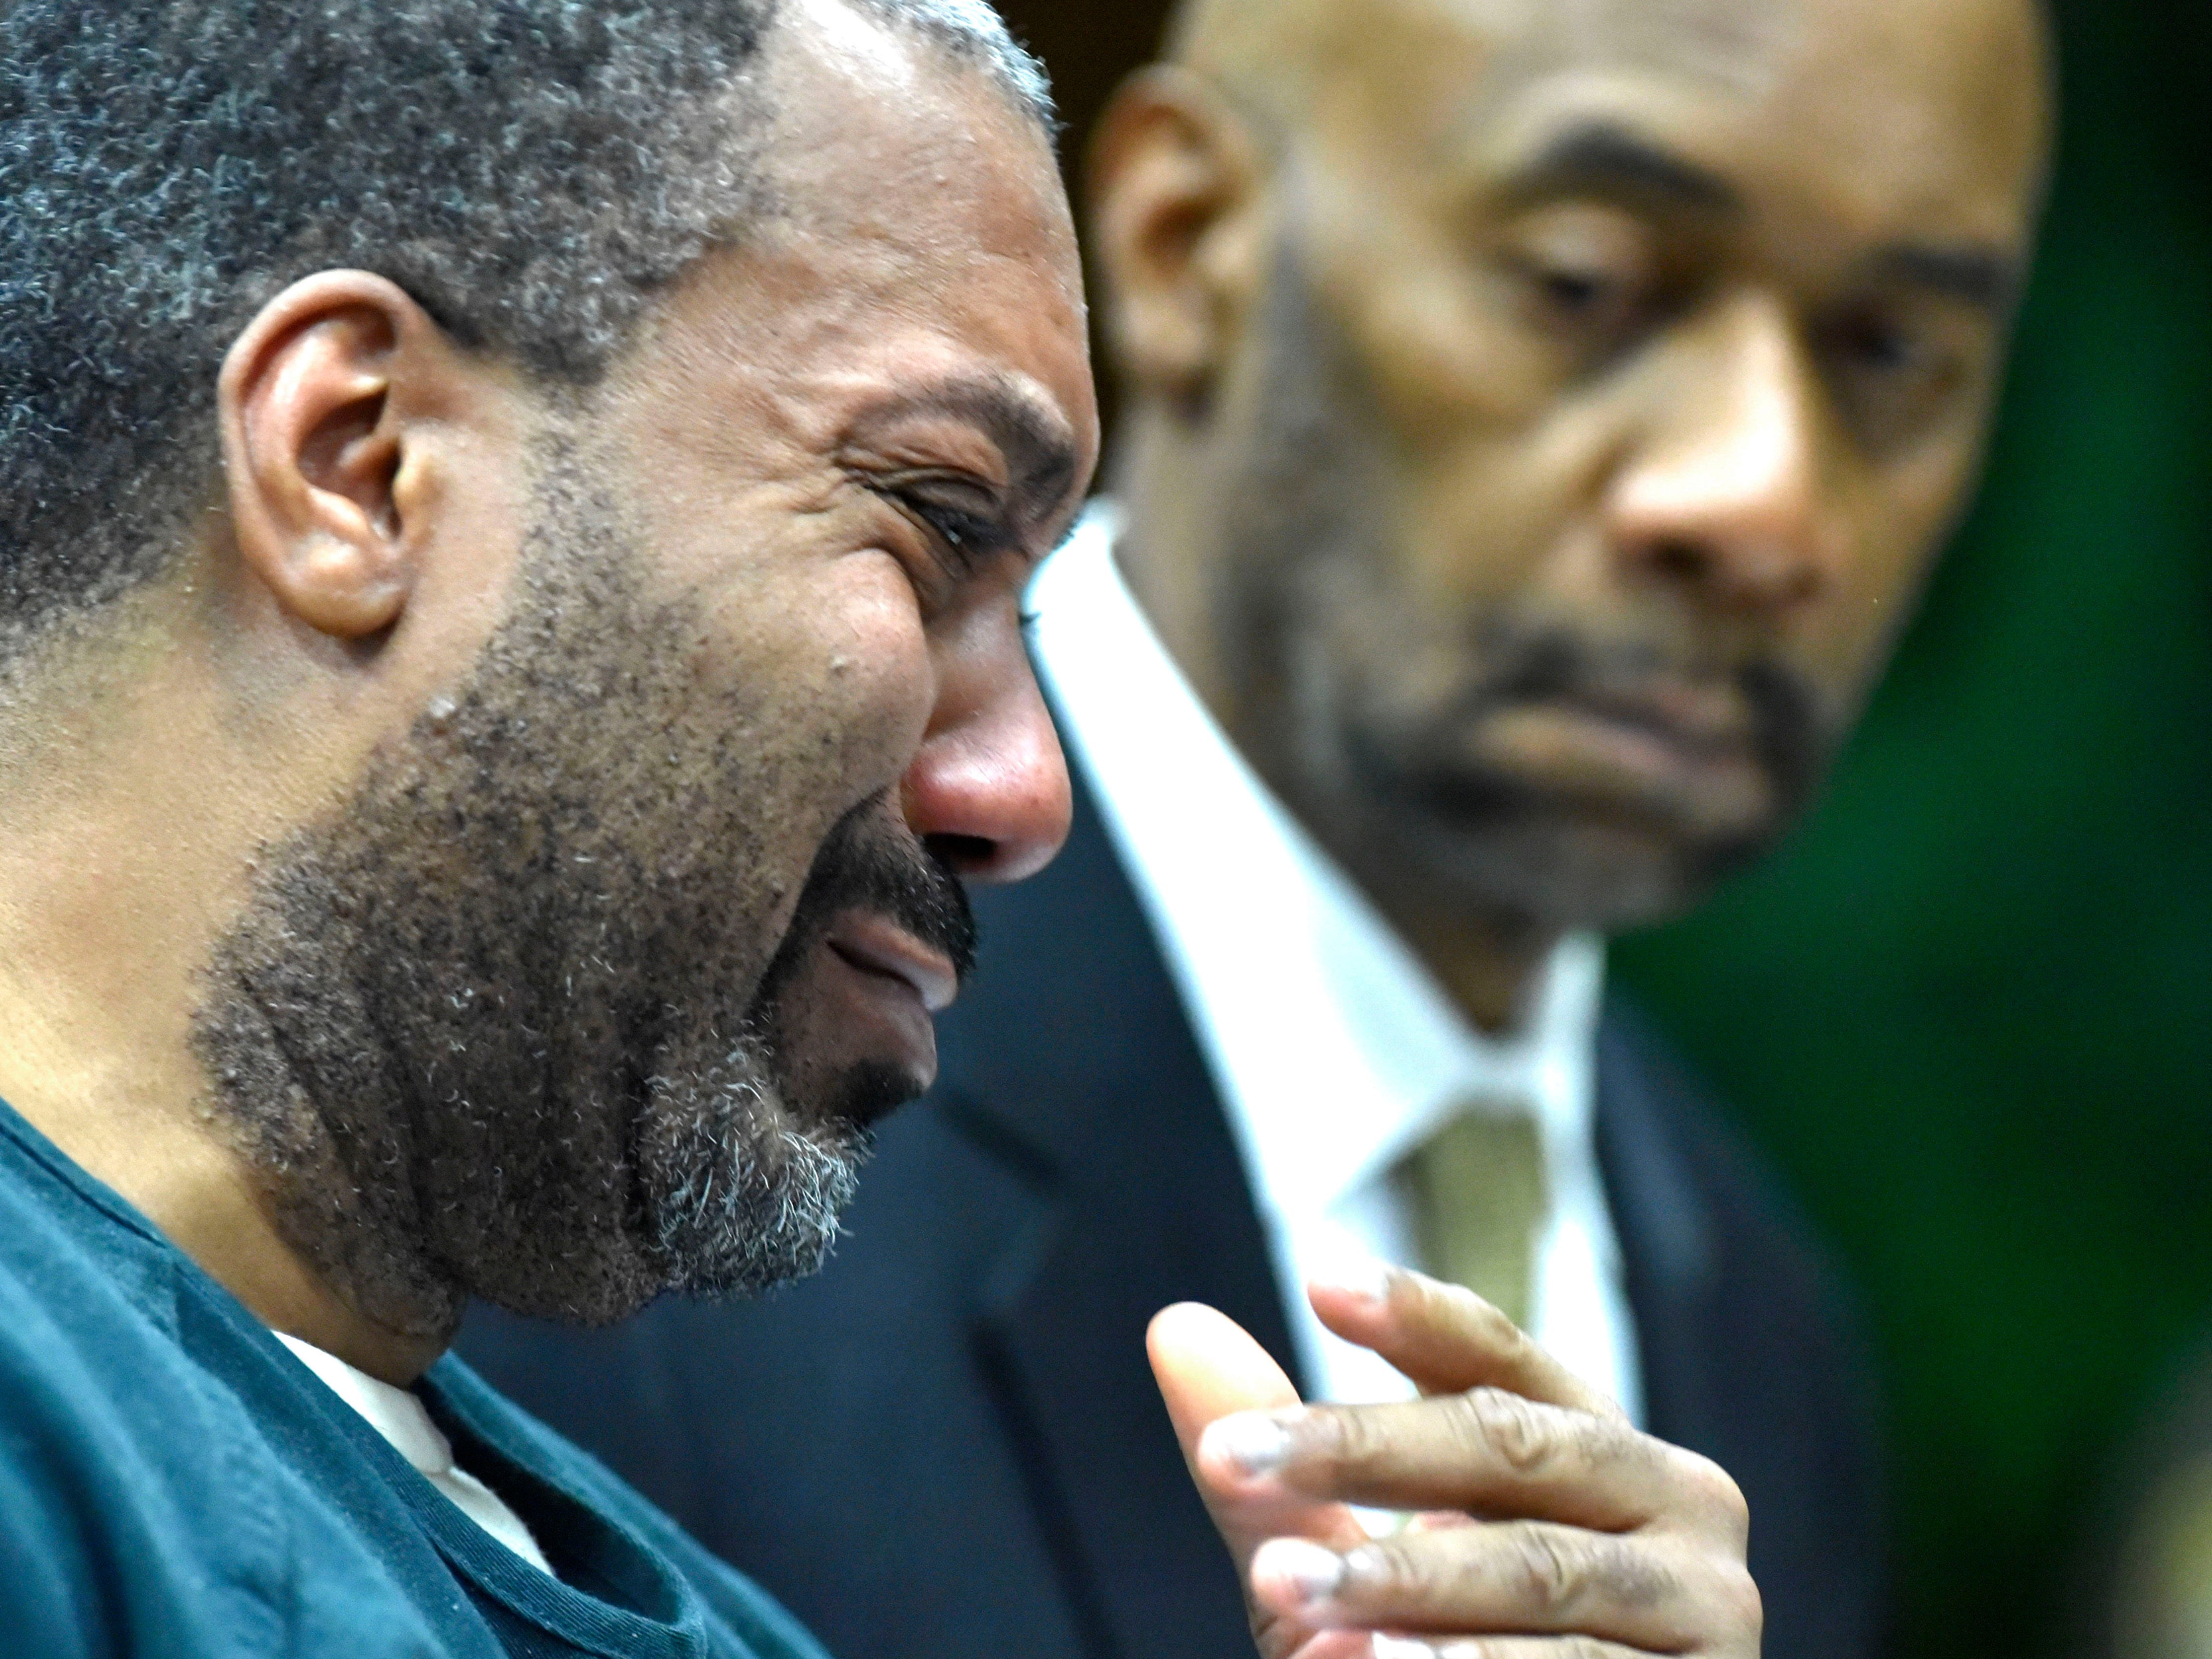 Decharlos Brooks, left, starts to cry while apologizing to the Doss family before he is sentenced.  His defense attorney, James Anderson, stands beside him. He was  sentenced to 36 to 60 years in a state prison (with 406 days served) for the December 2018 shooting murder of Detroit Police Officer Glenn Doss Jr.